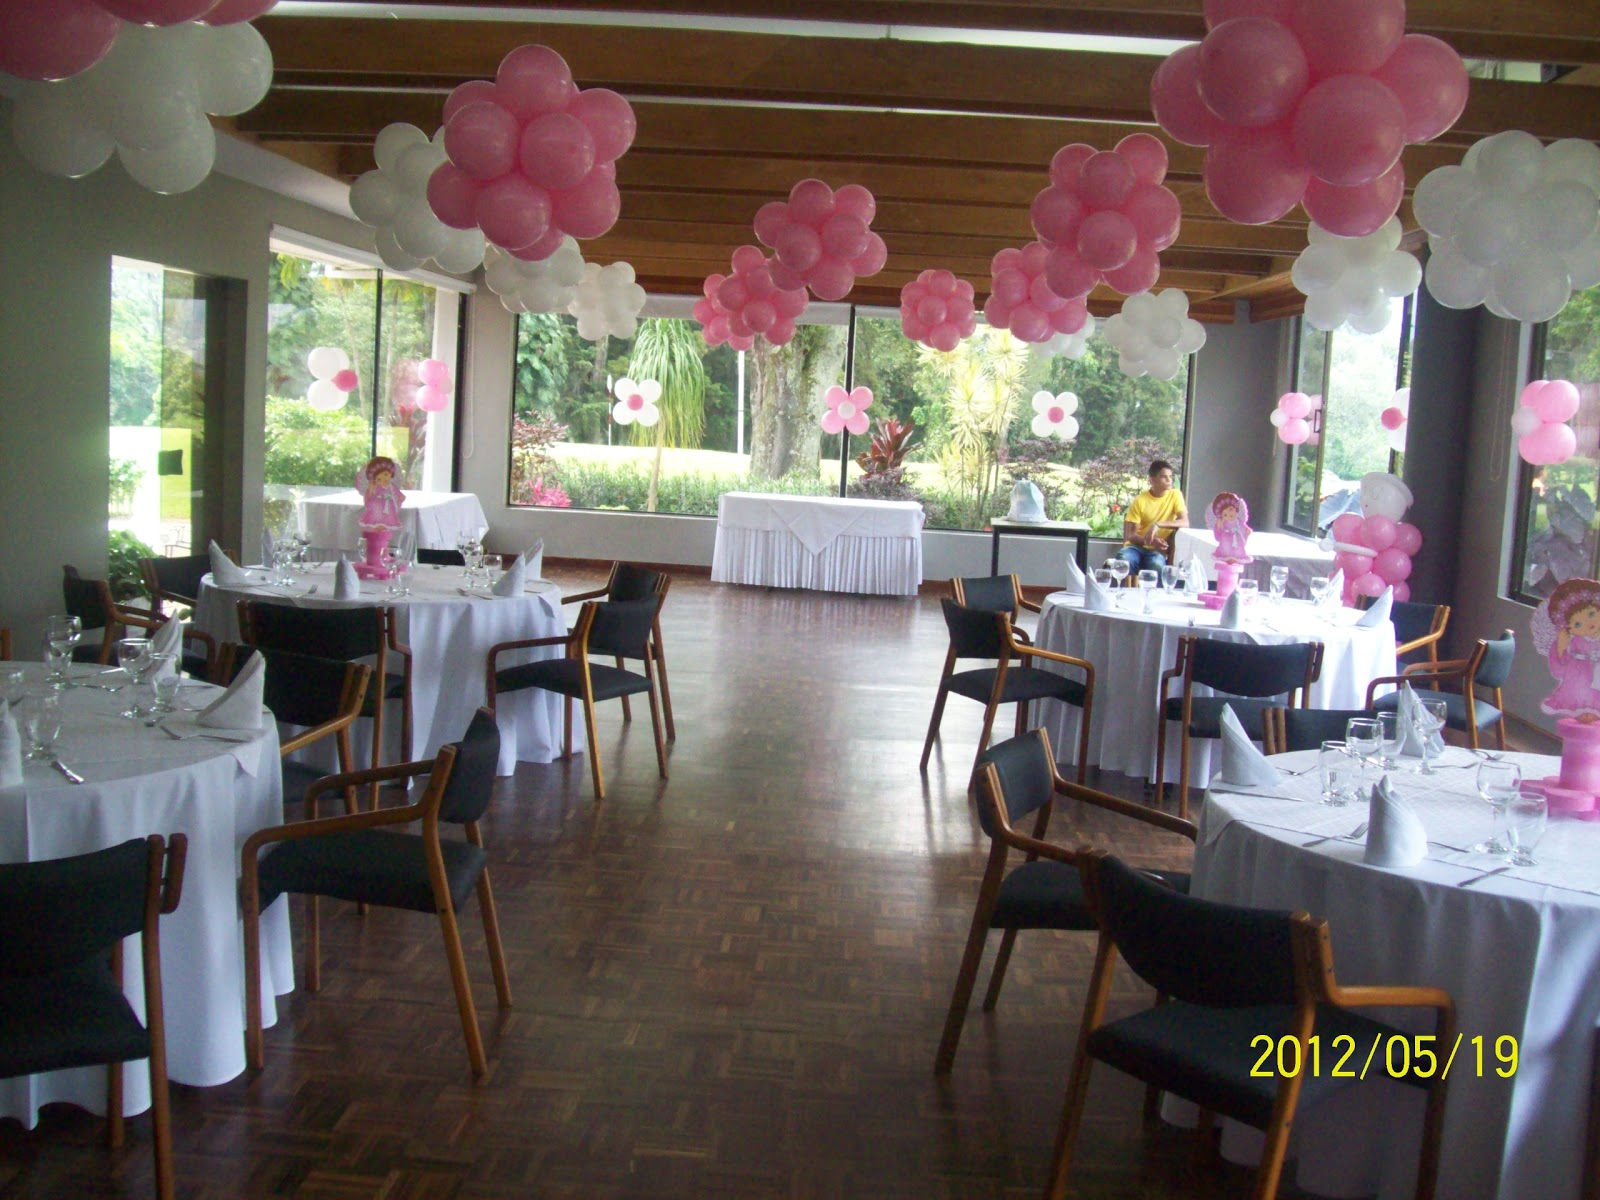 Decoracion primera comunion con globos 1 recreacionistas for Ver decoraciones